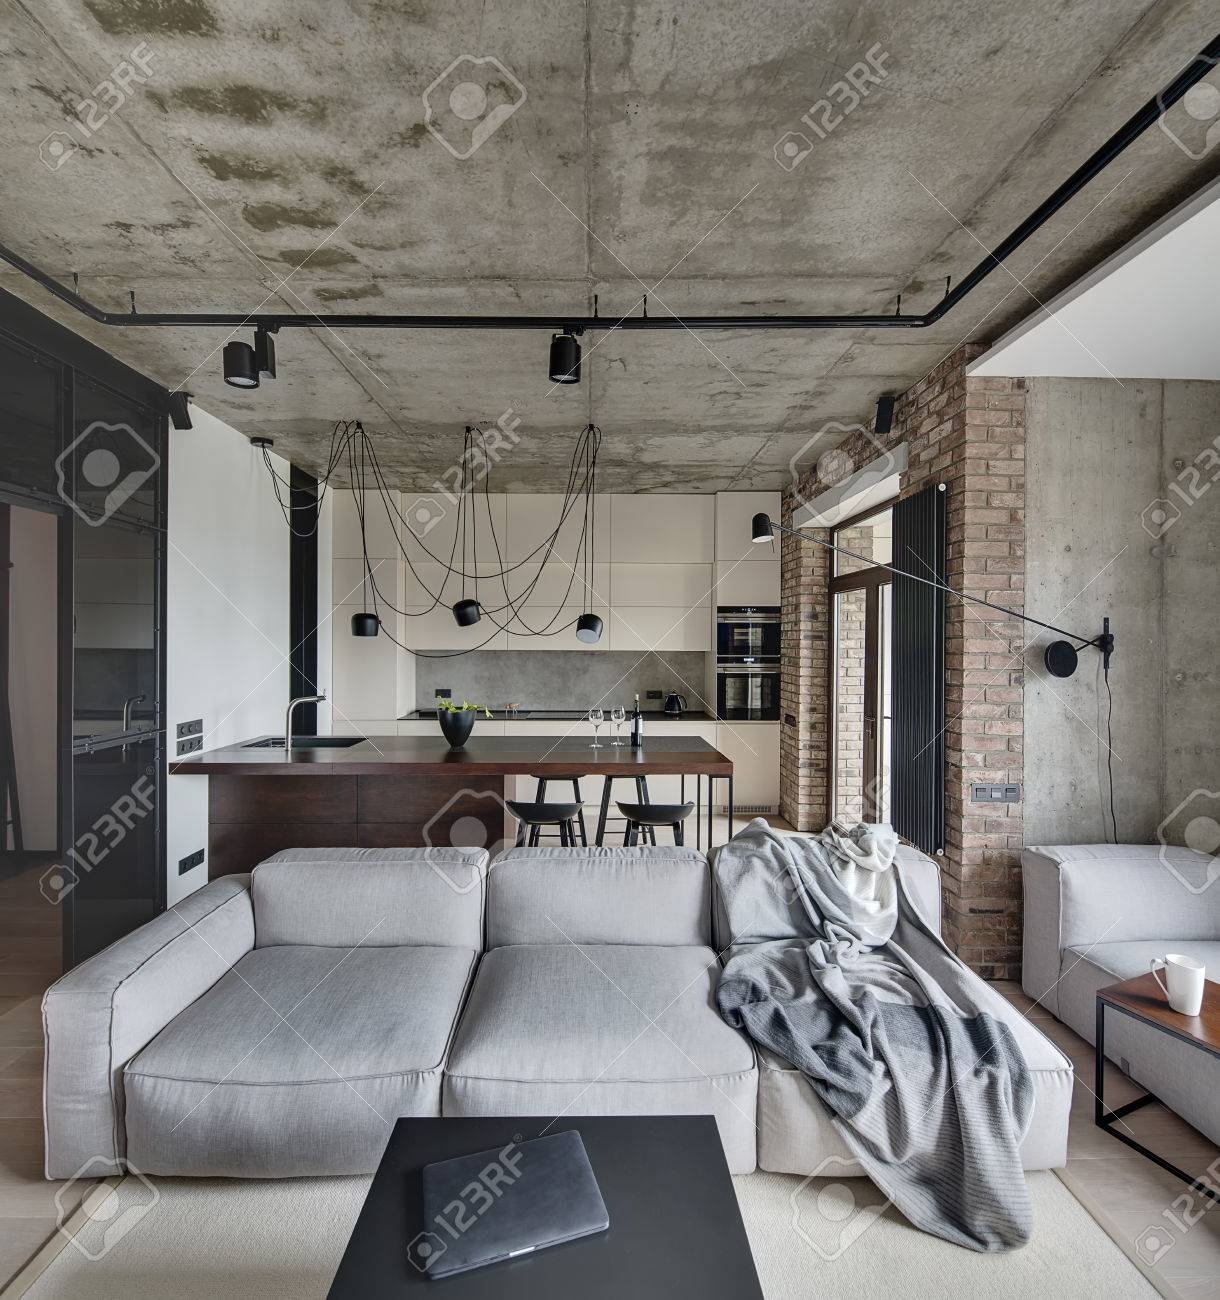 Living Room And A Kitchen Zone In A Loft Style With Concrete And Brick Walls